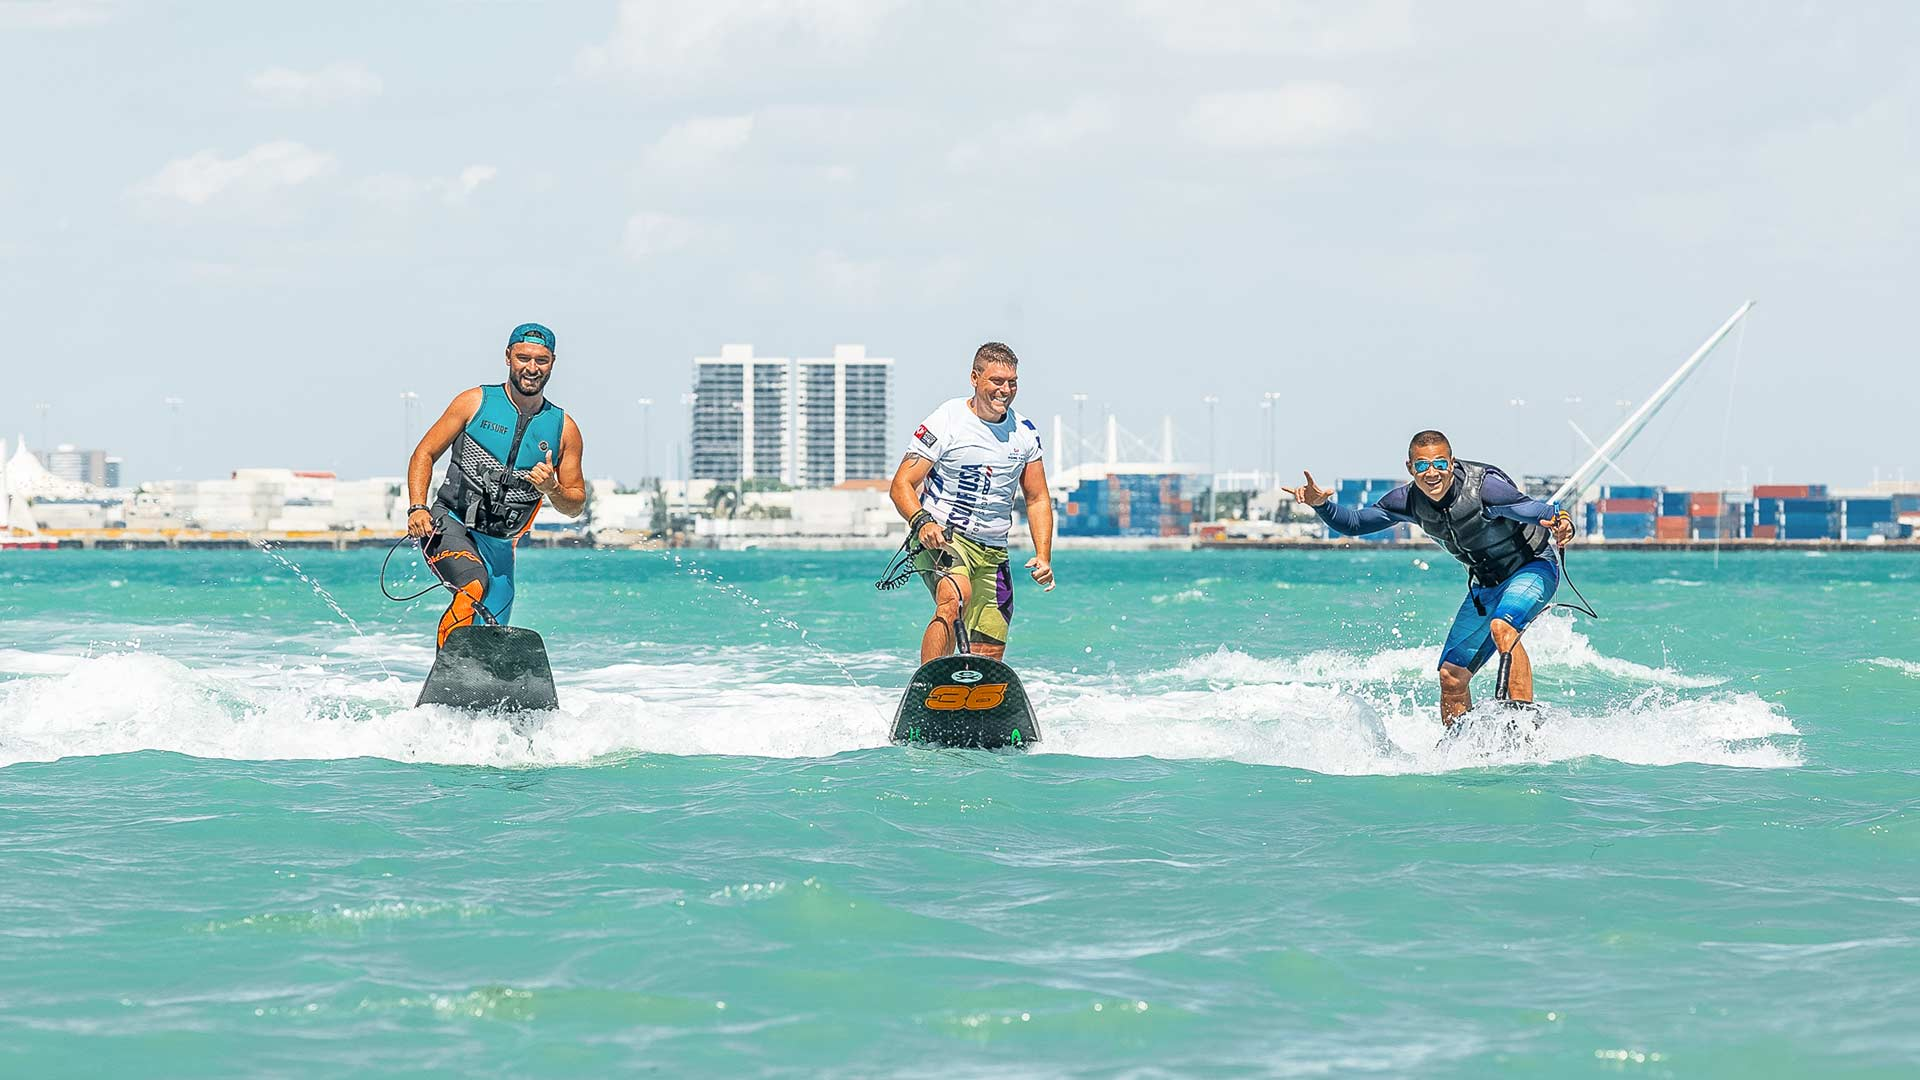 Miami surfing